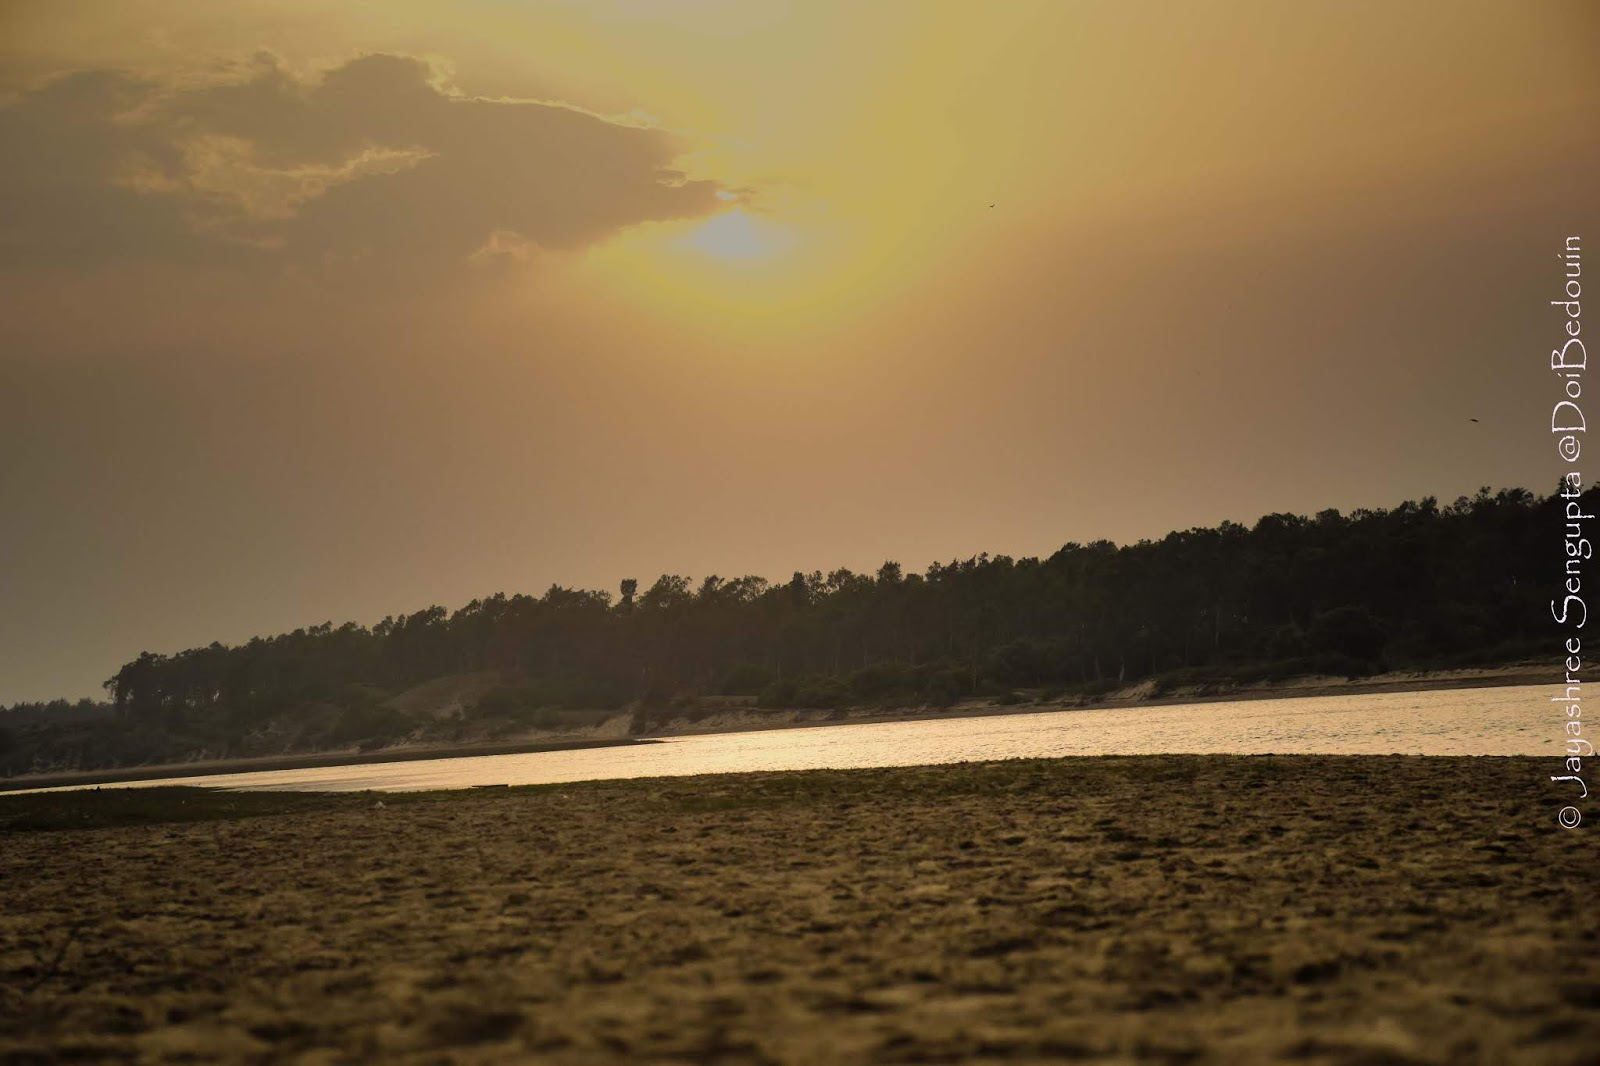 With the setting sun the beach turned into a dream-scape. @DoiBedouin